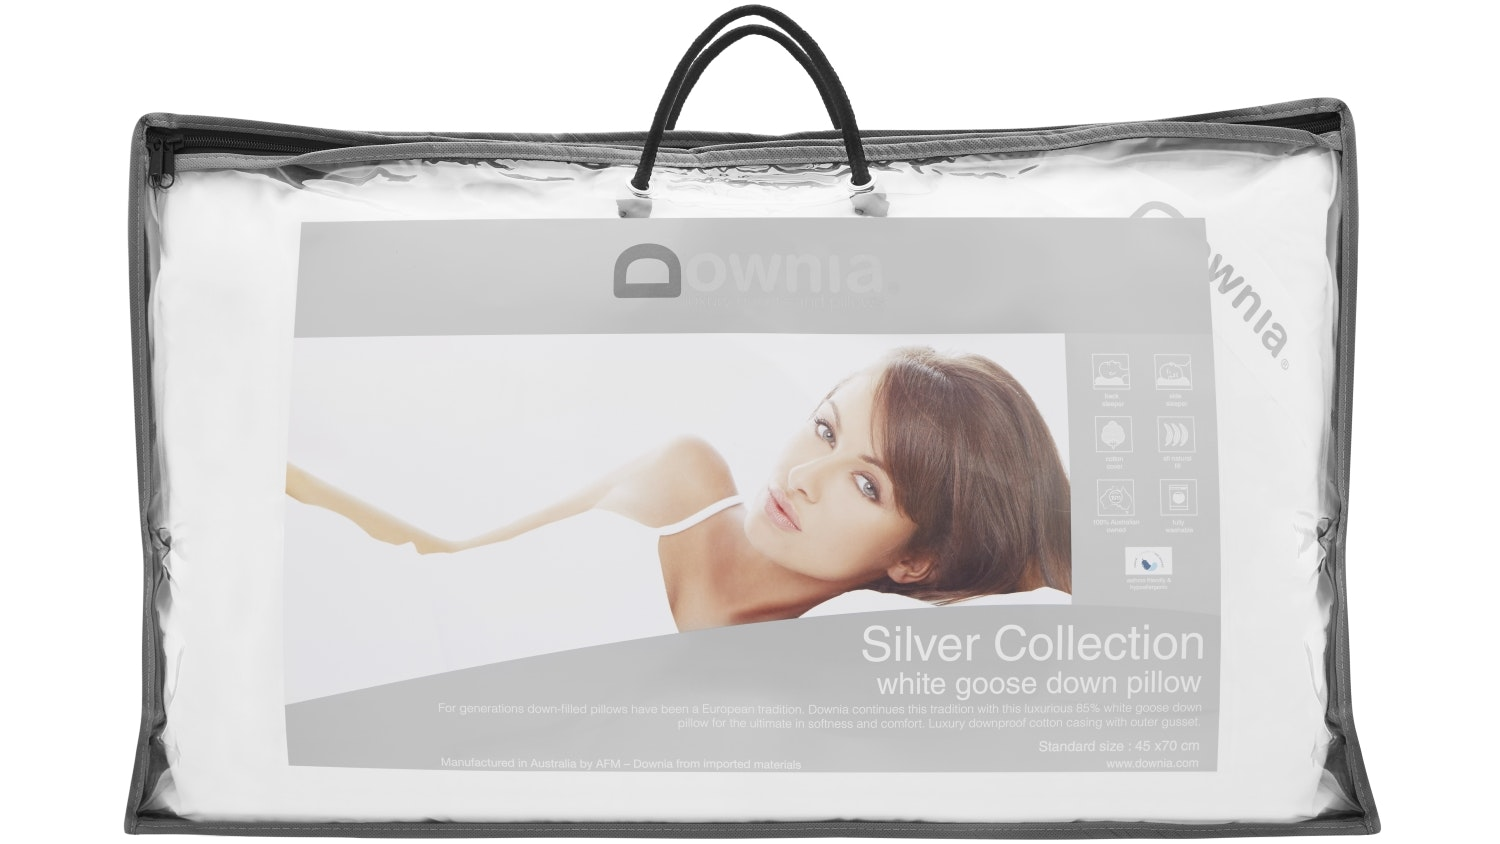 Downia Silver Collection White Goose Down Pillow